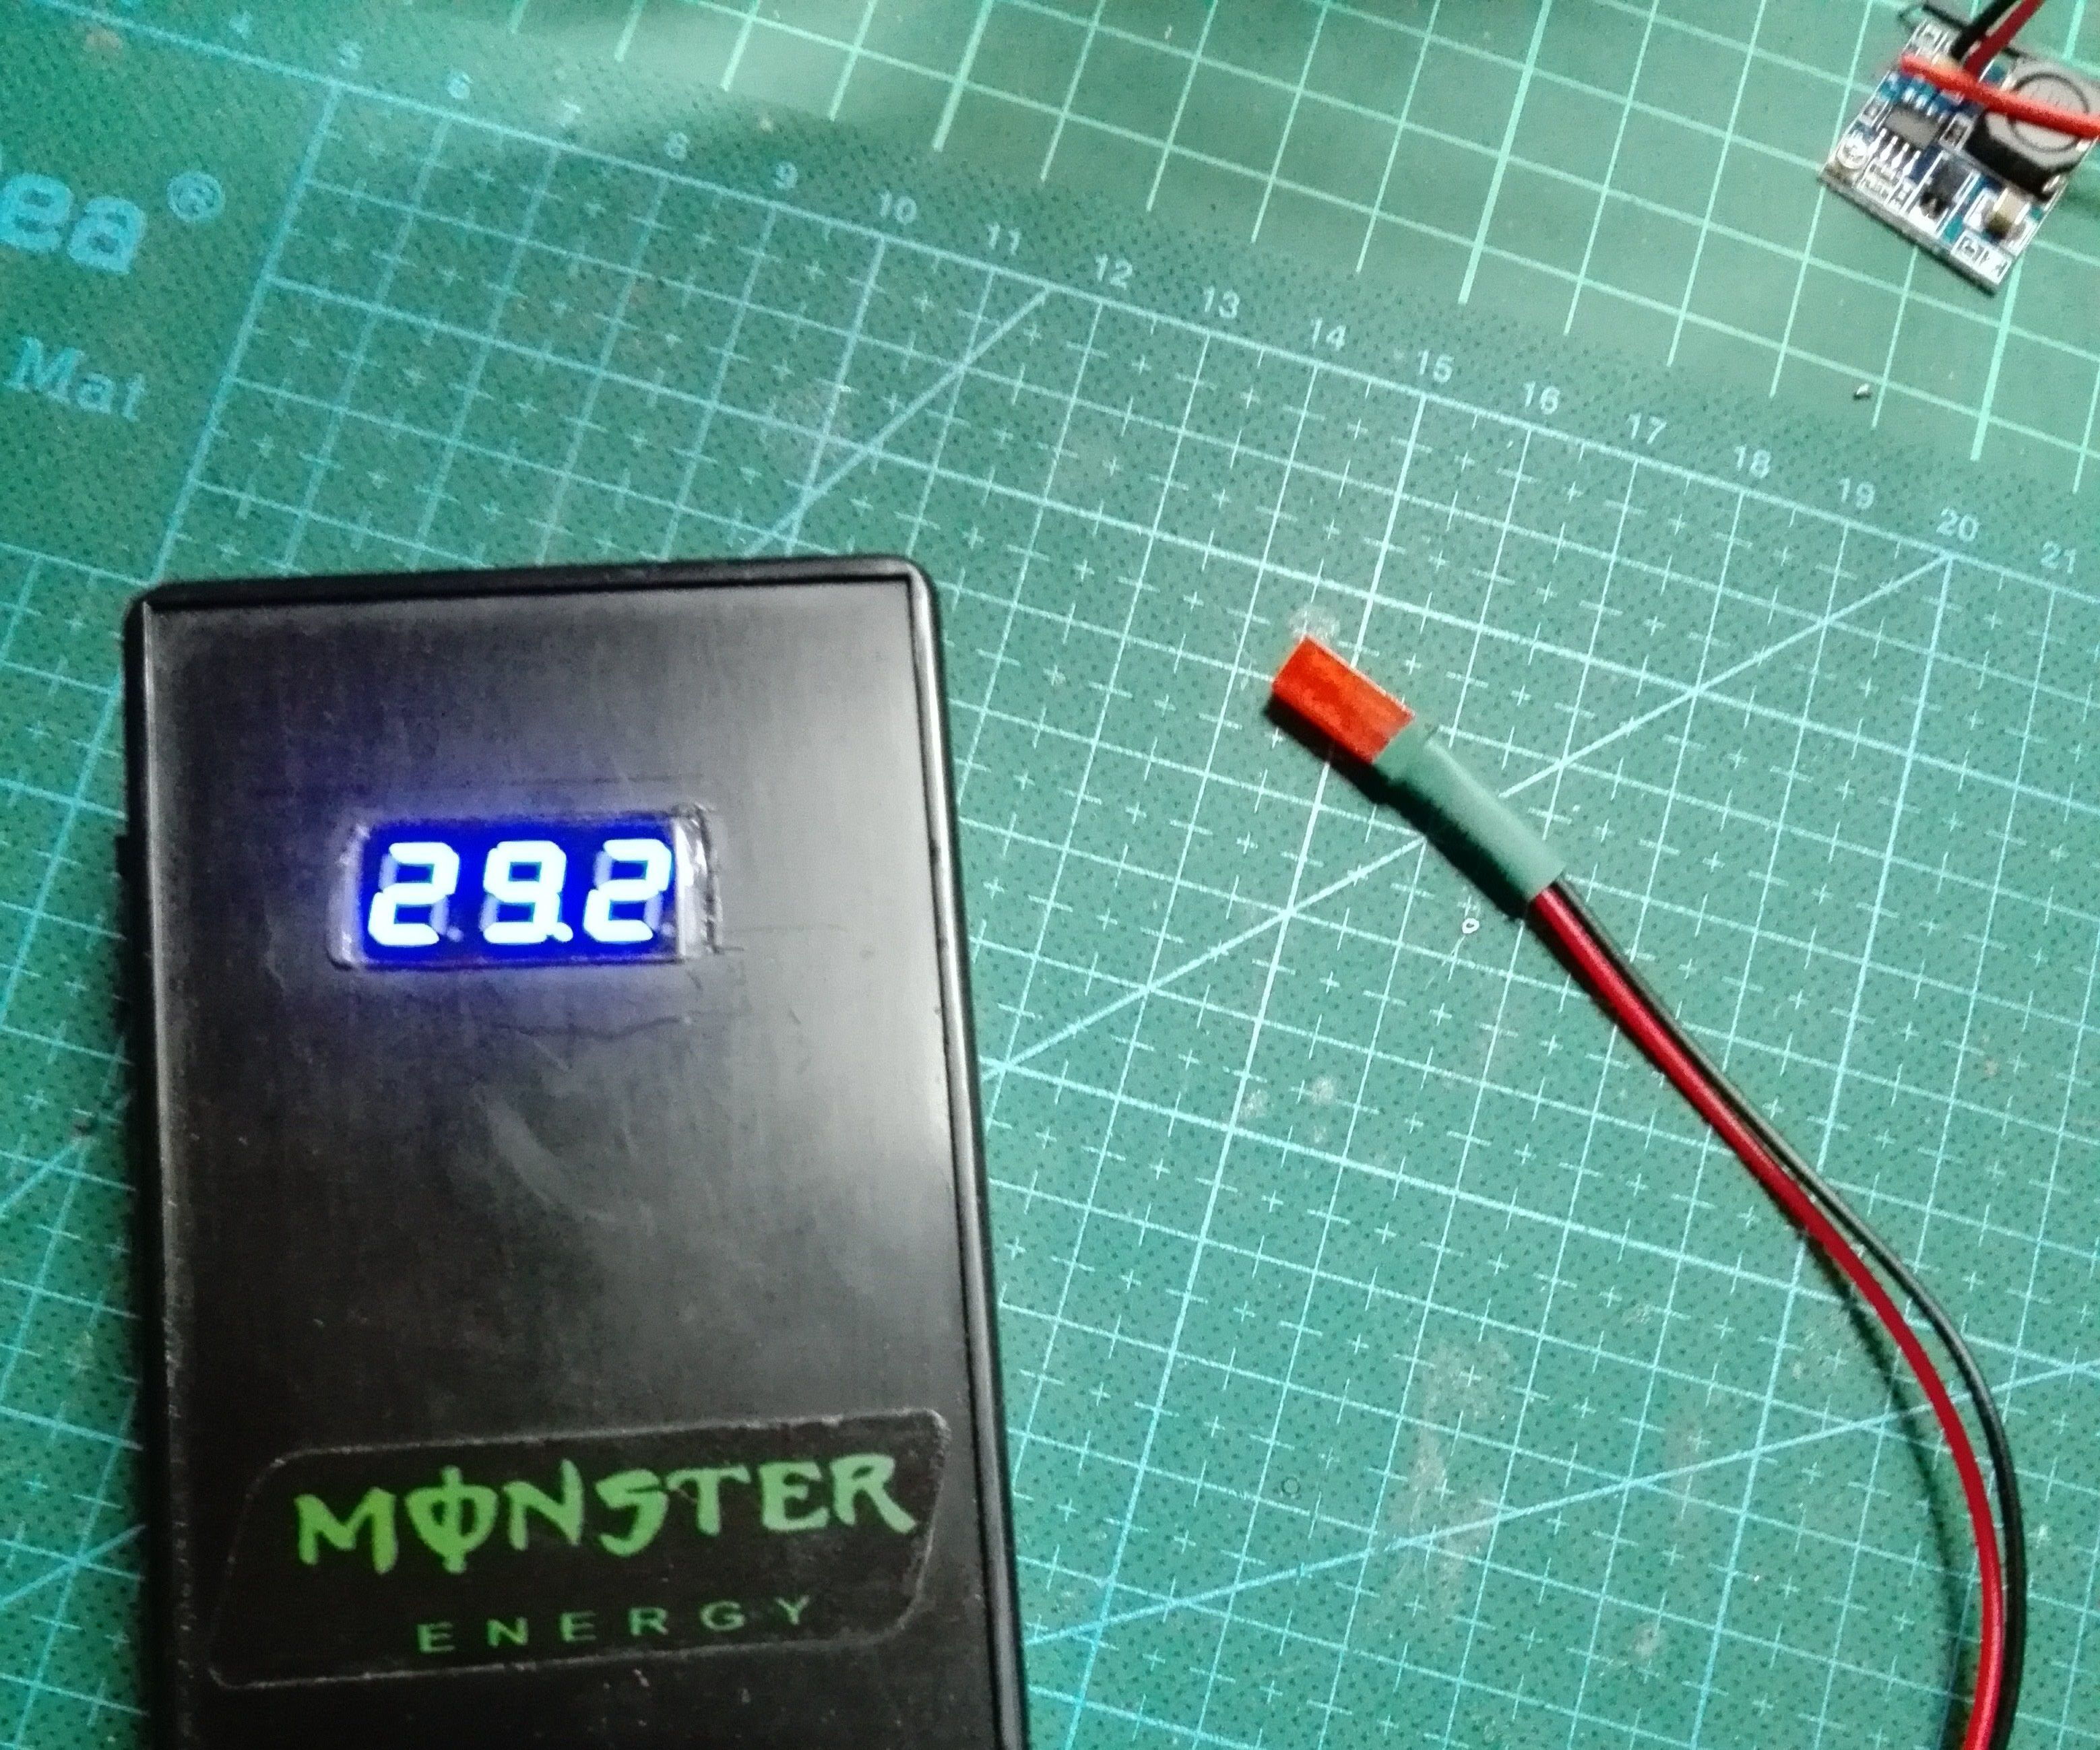 Portable Wireless Power Supply Booster, 4.5V to 29V, and 5V Phone Charger Also.